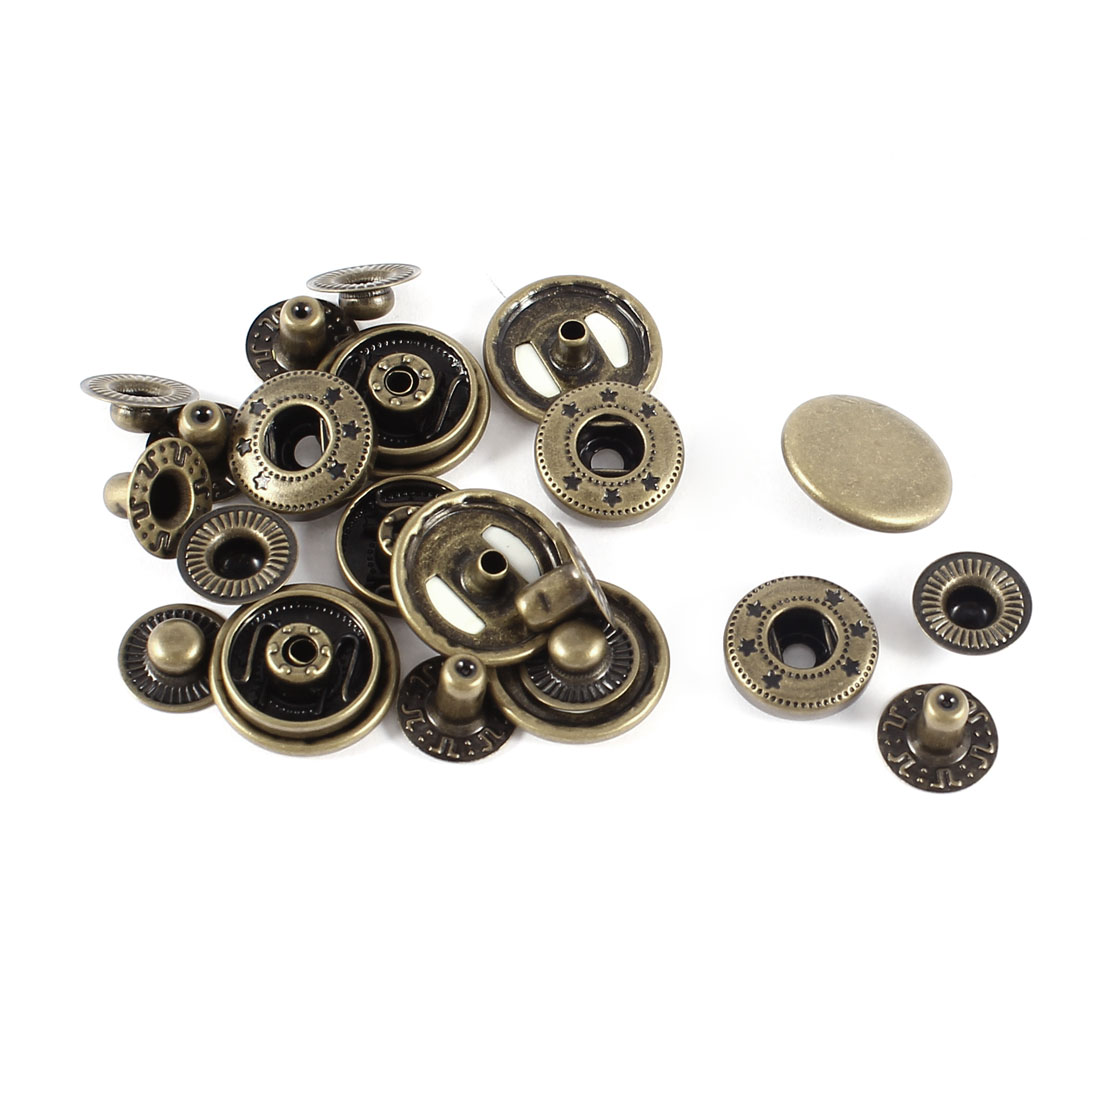 6 Sets Bronze Tone Metal Poppers Sewing Press Studs Buttons Snap Fastener 17mm